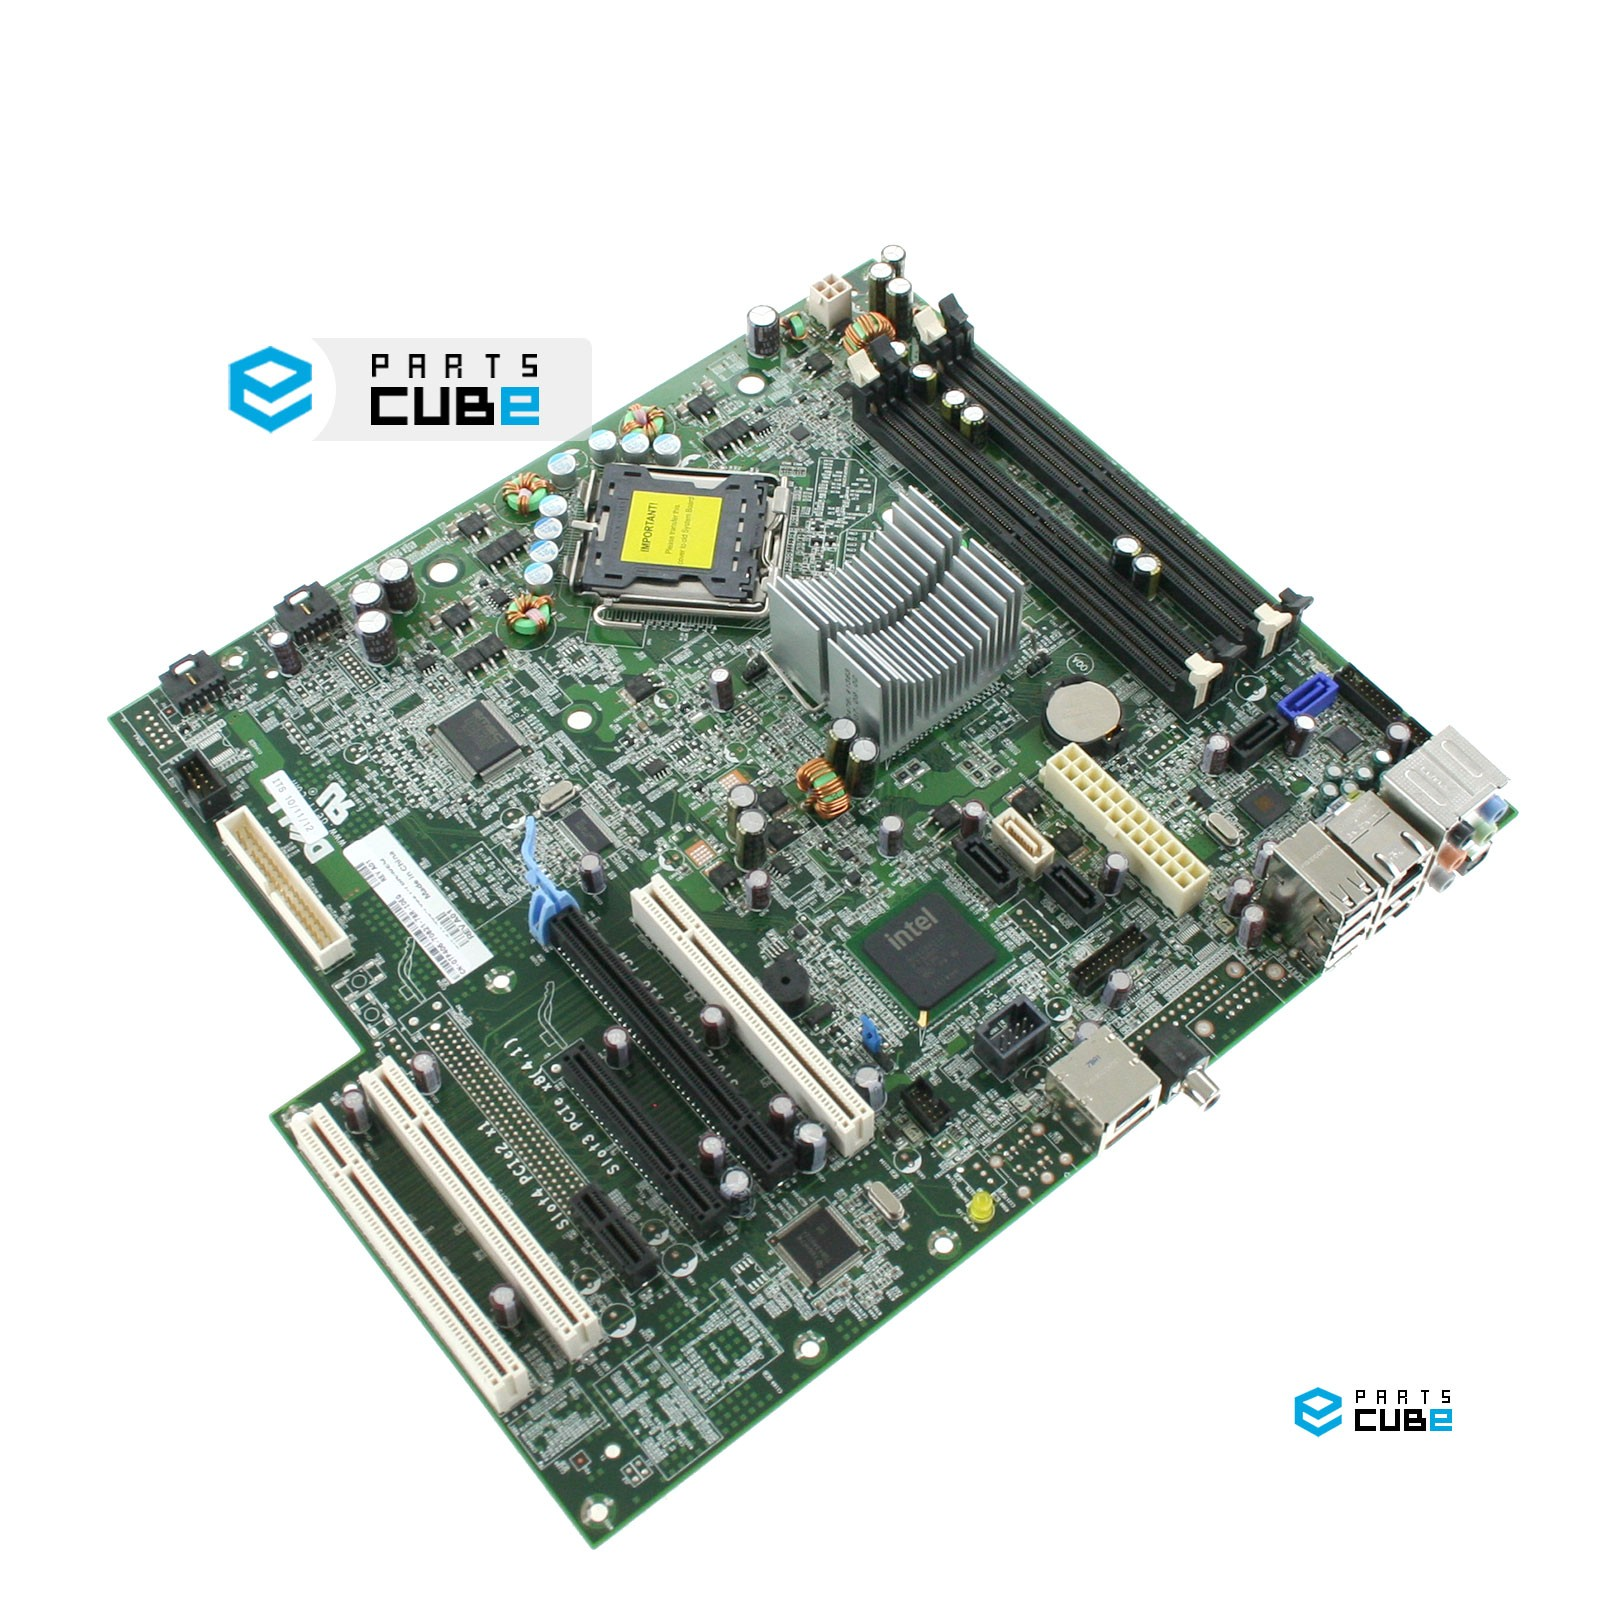 DELL XPS 420 MOTHERBOARD WINDOWS DRIVER